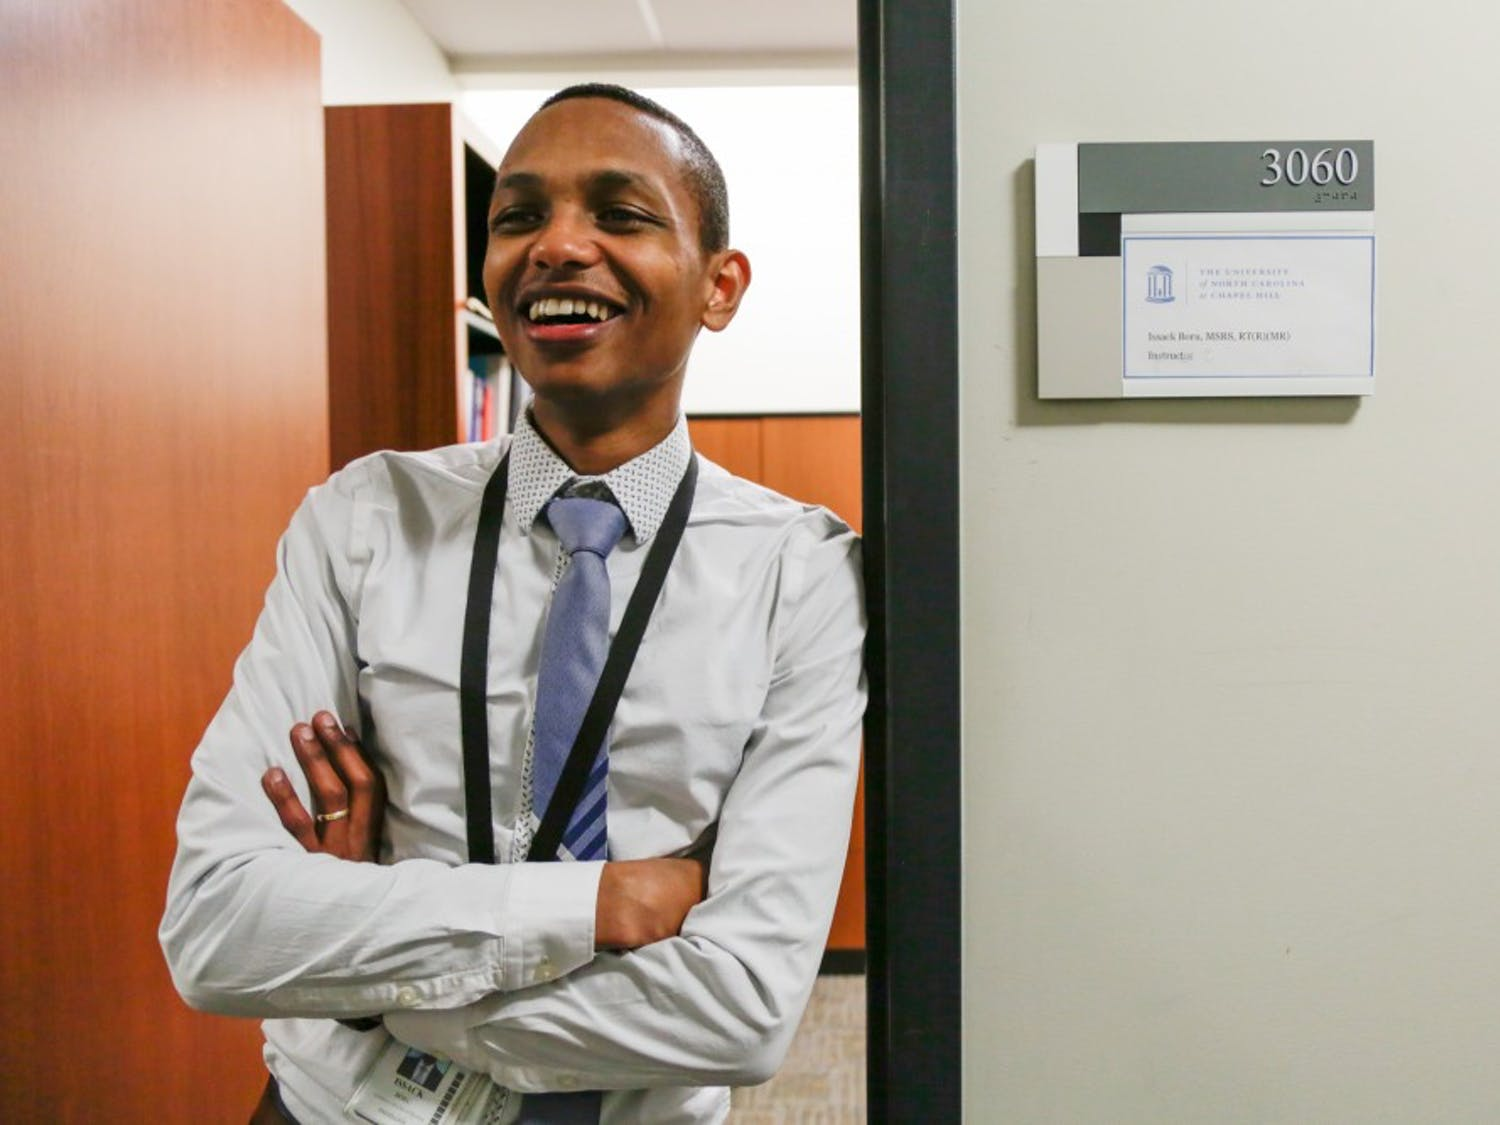 Issack Boru, radiology imaging supervisor and clinical instructor for the Division of Radiologic Science, poses in the door to his office in Bondurant Hall, home to the UNC School of Medicine, Tuesday, Feb. 19, 2019. Boru traveled with RAD-AID international in 2018 to partner with and teach radiologists at Tikur Anbessa Specialized Hospital (TASH) in Addis Ababa, Ethiopia.